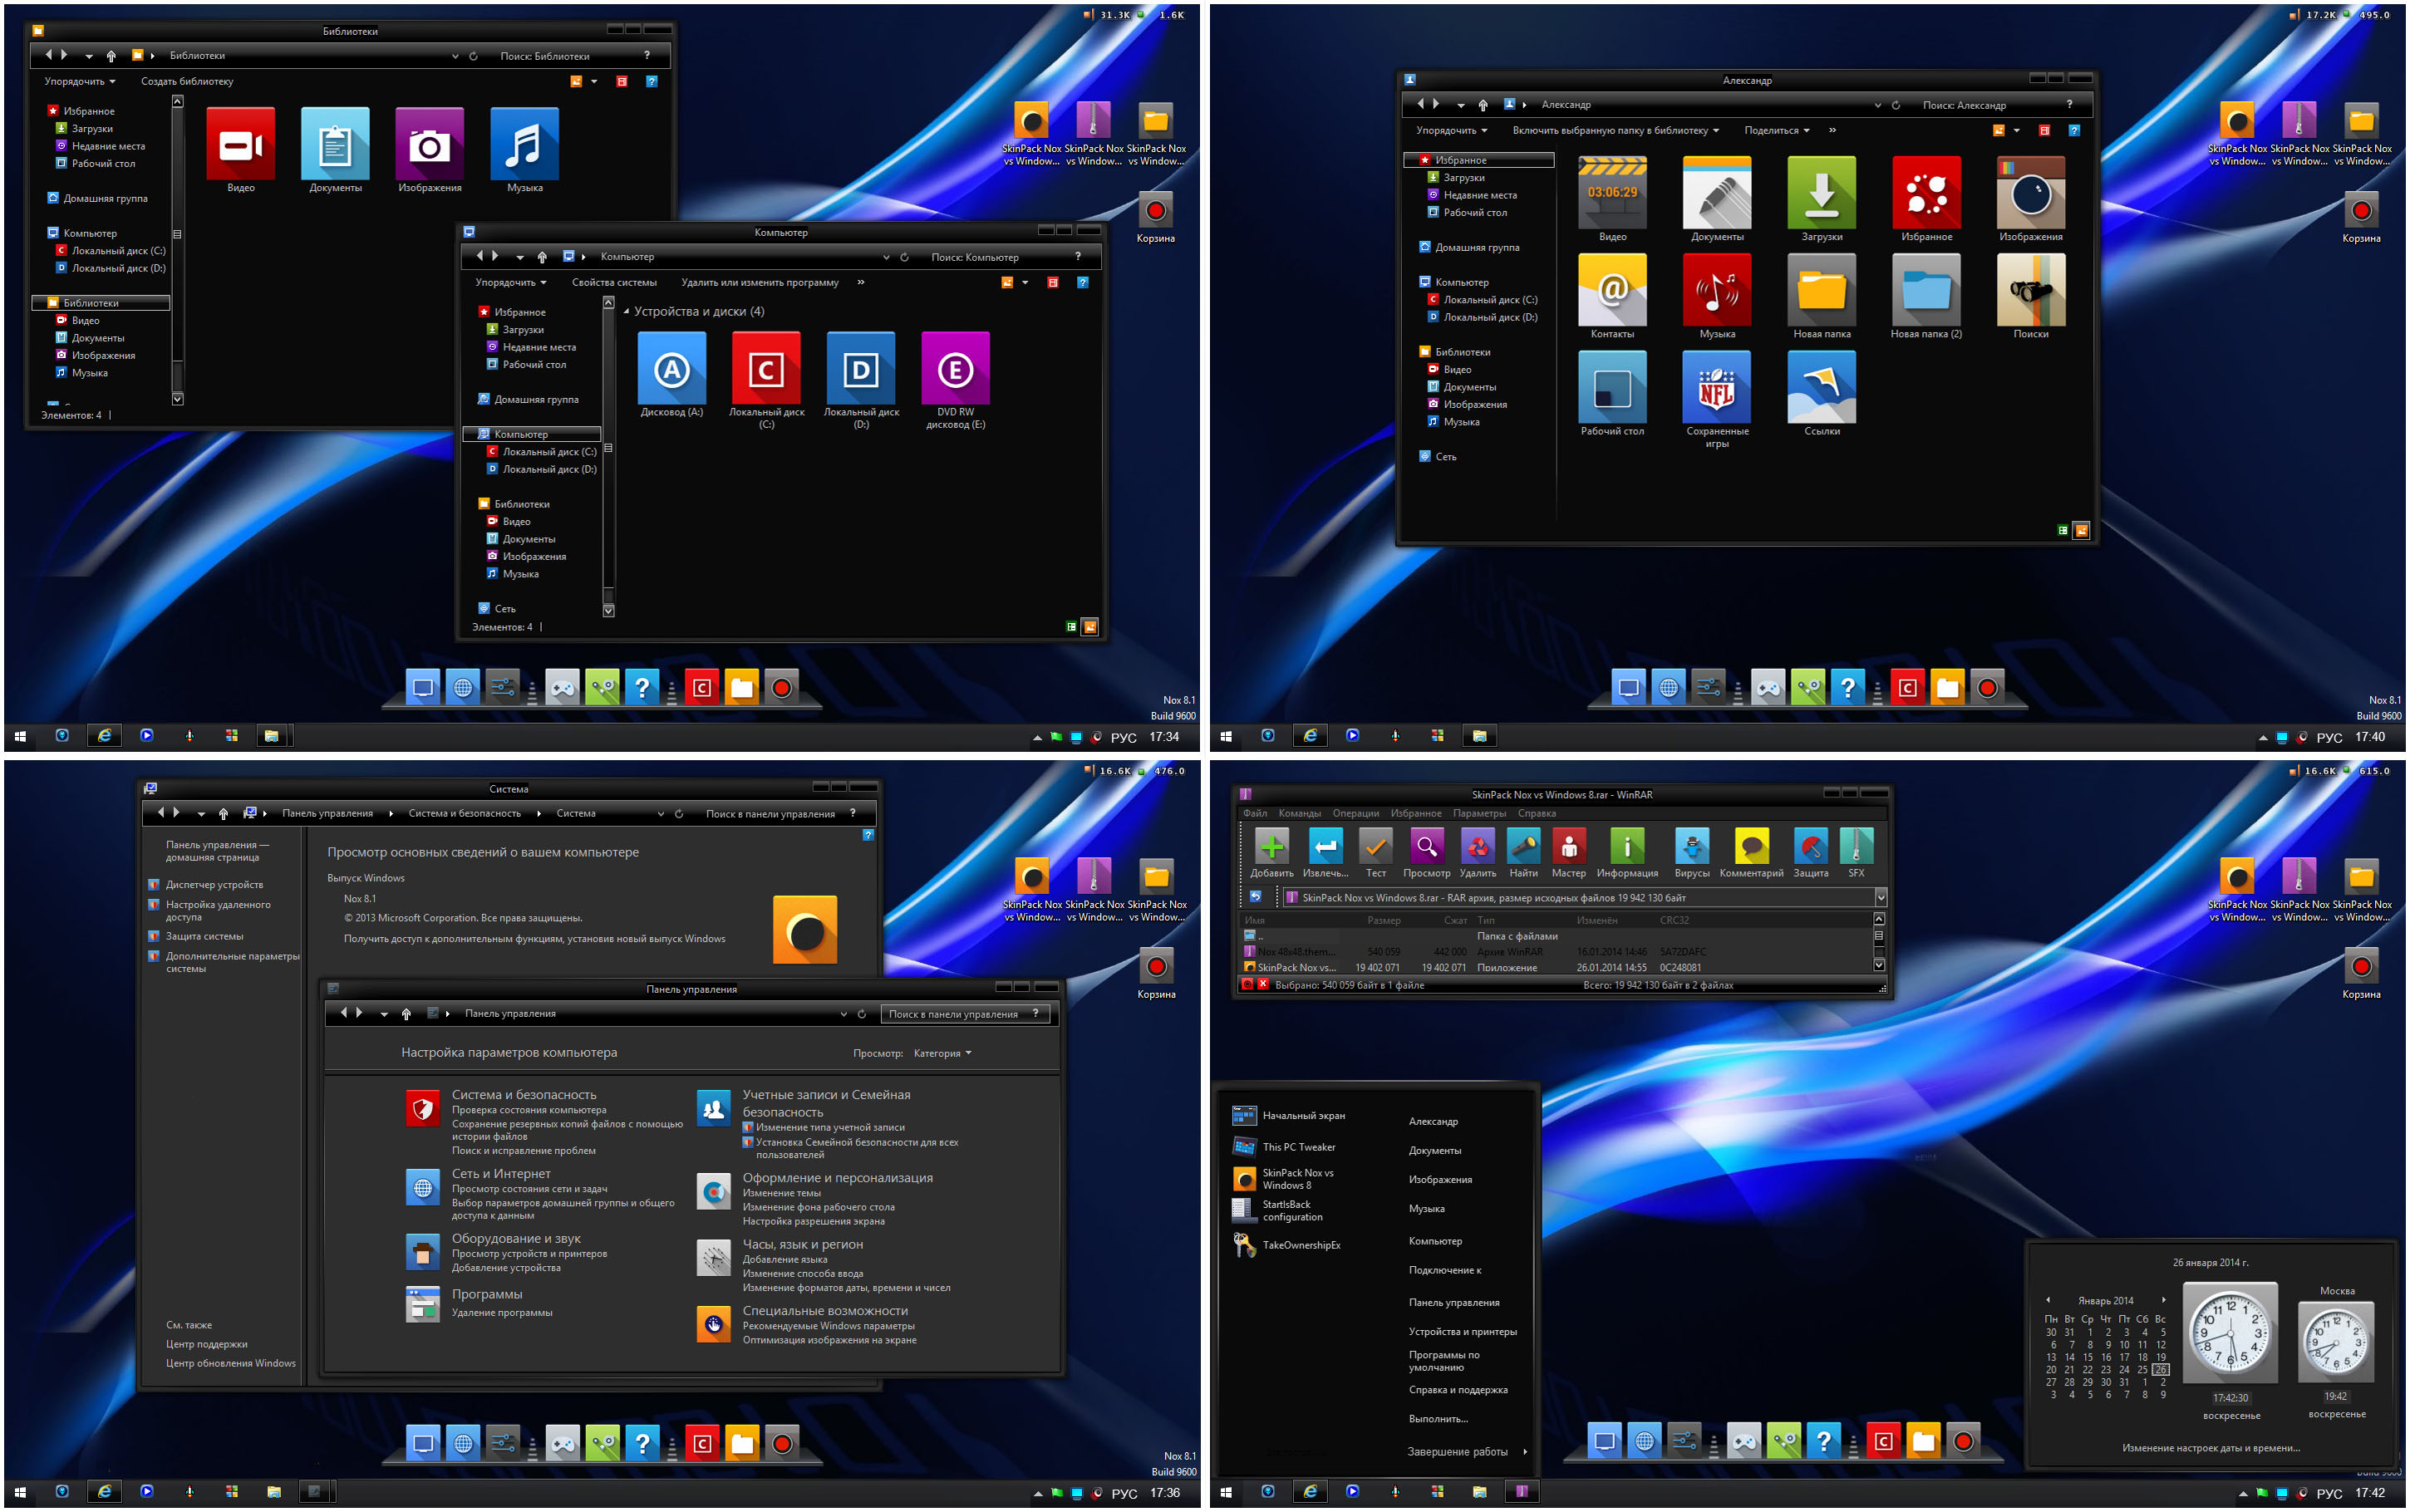 SkinPack Nox vs Windows 8